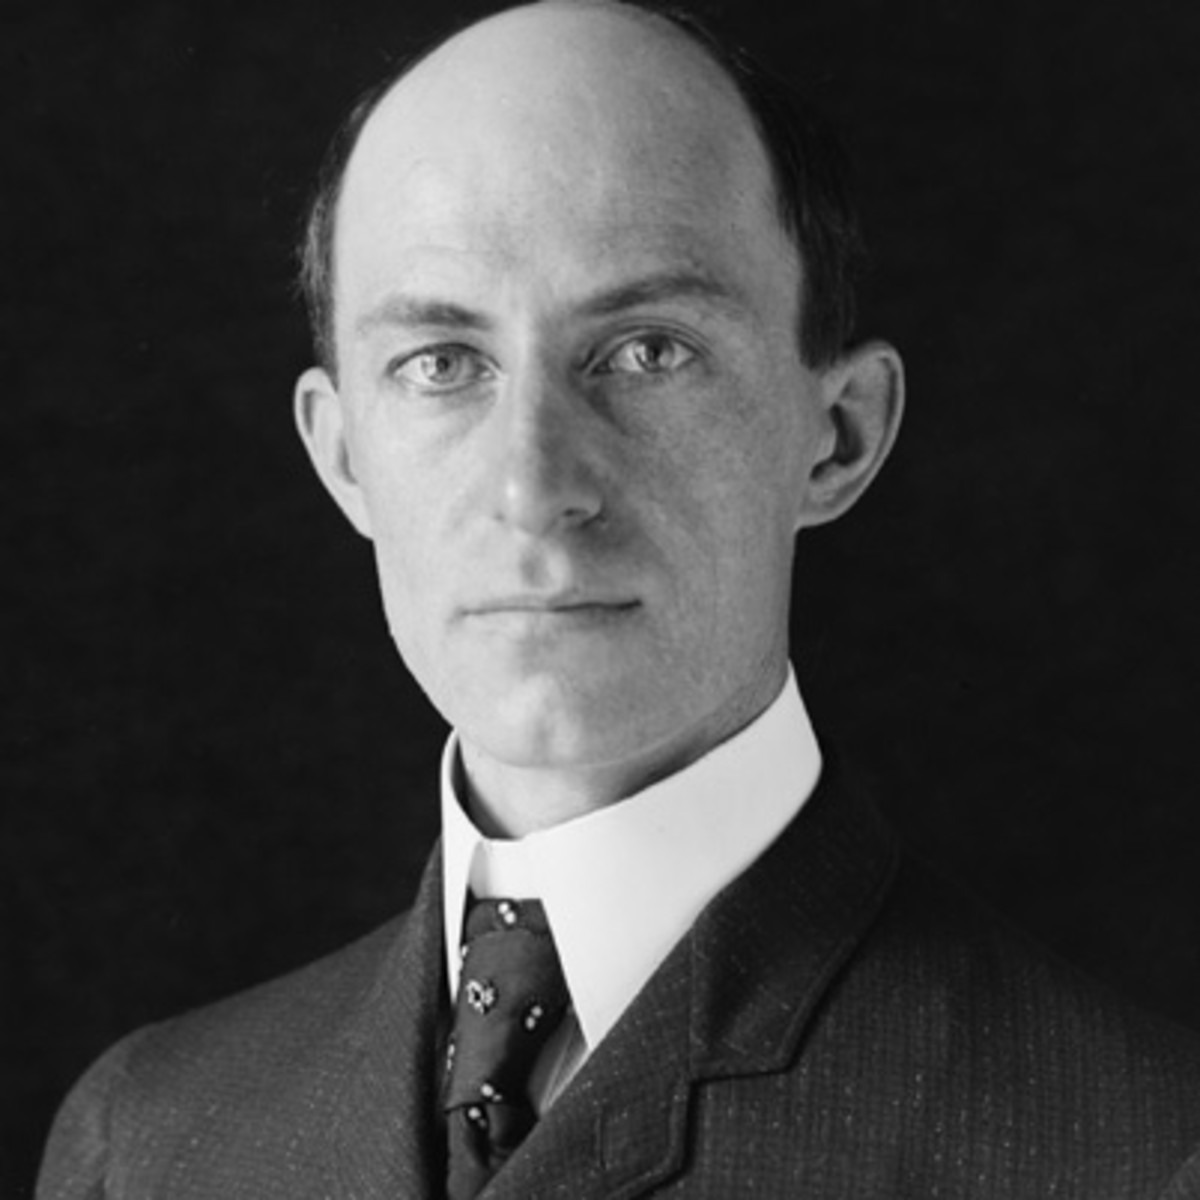 Wilbur Wright - Birthplace, Orville & Death - Biography